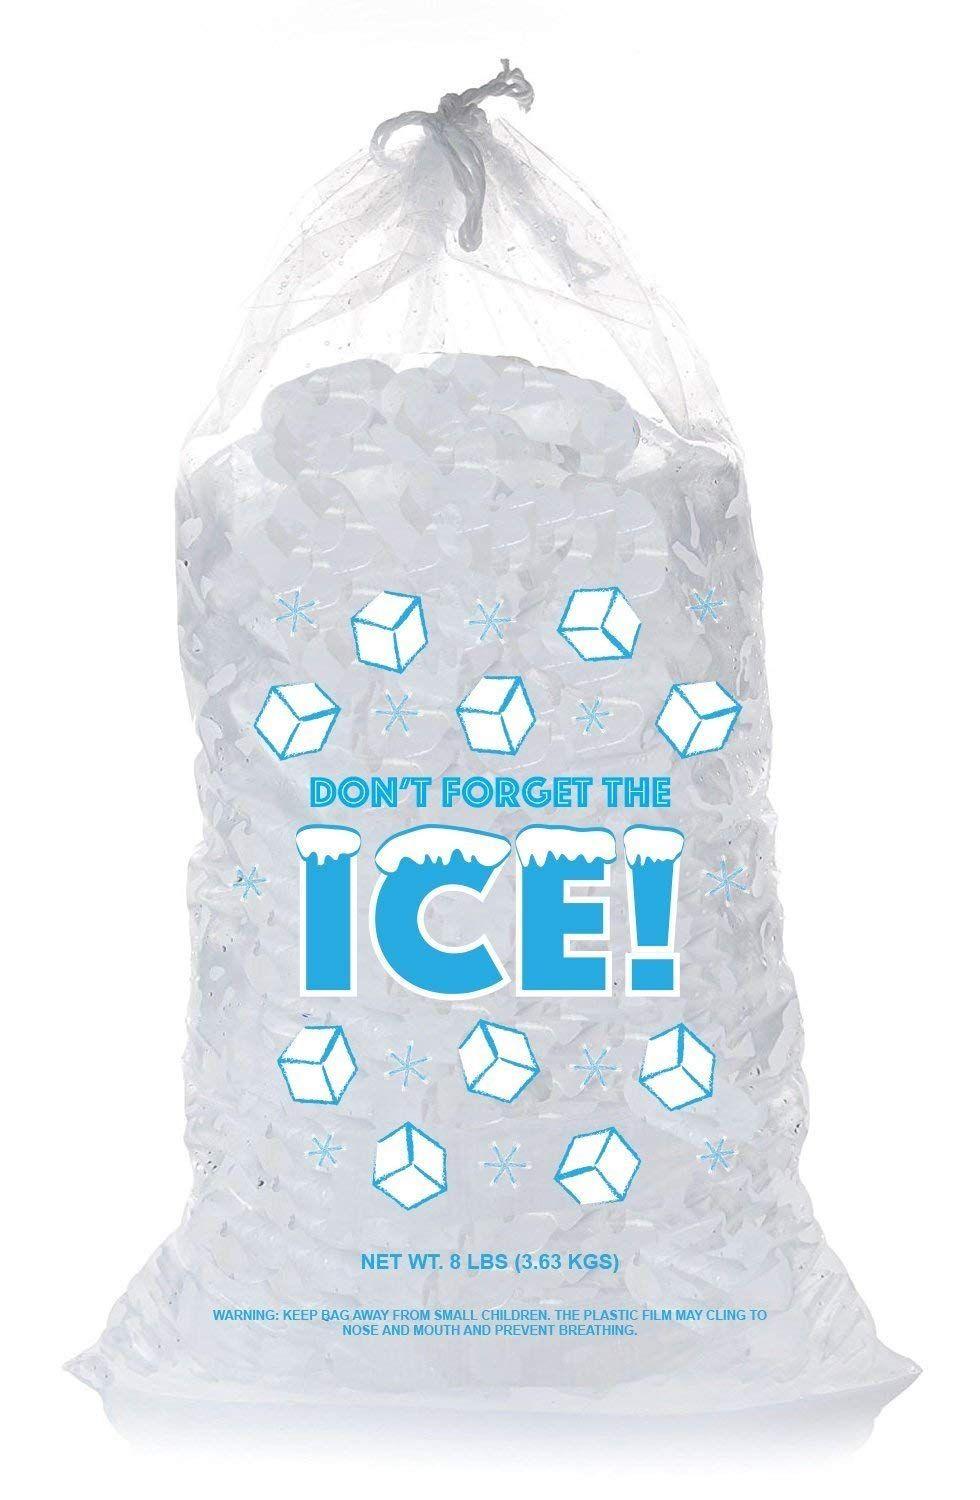 Pin On Ice Bag Sign Ideas